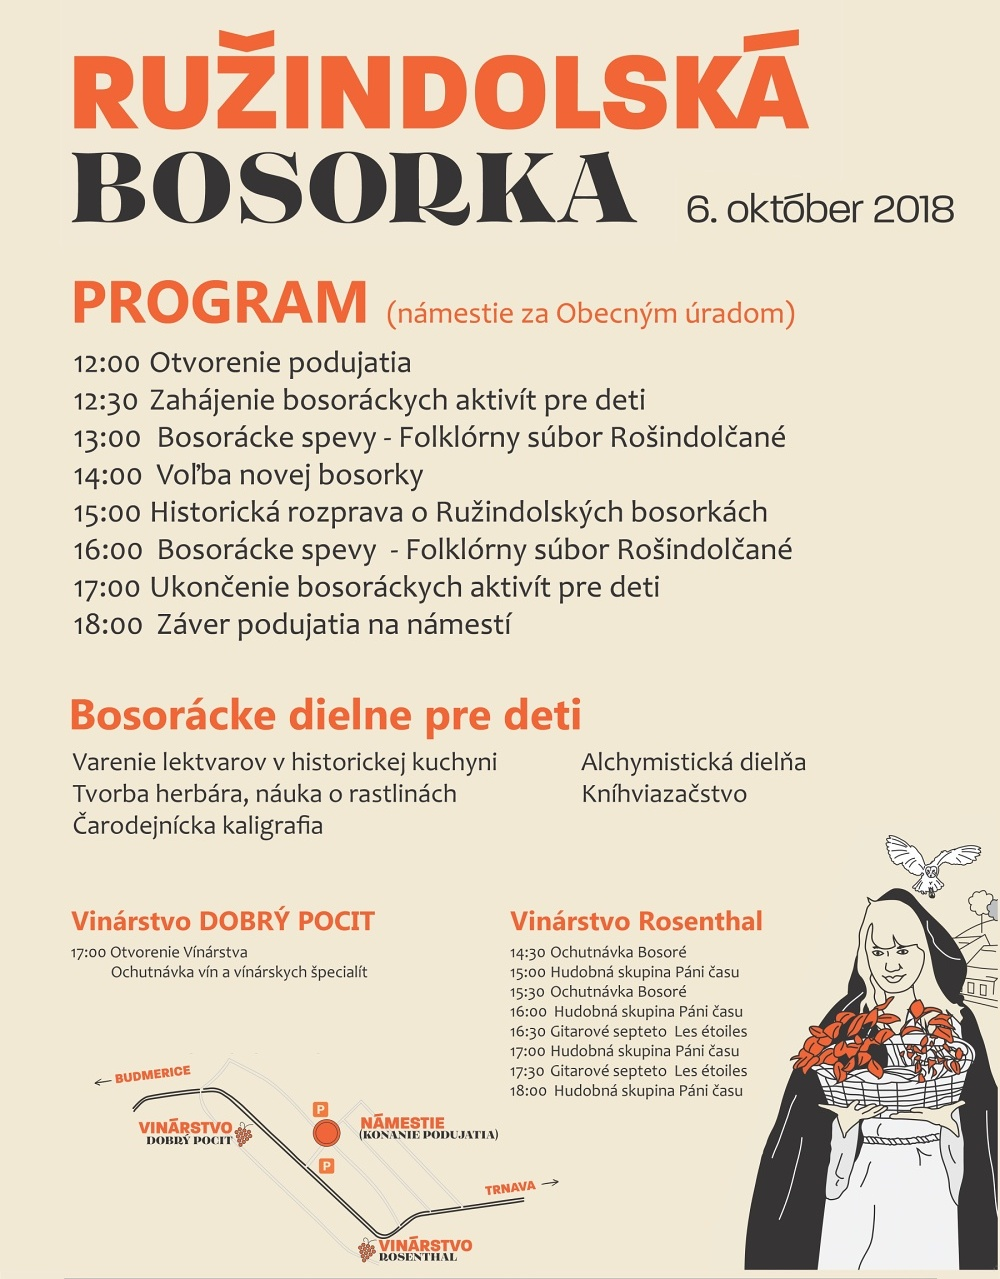 Ružindolská bosorka 2018 - program